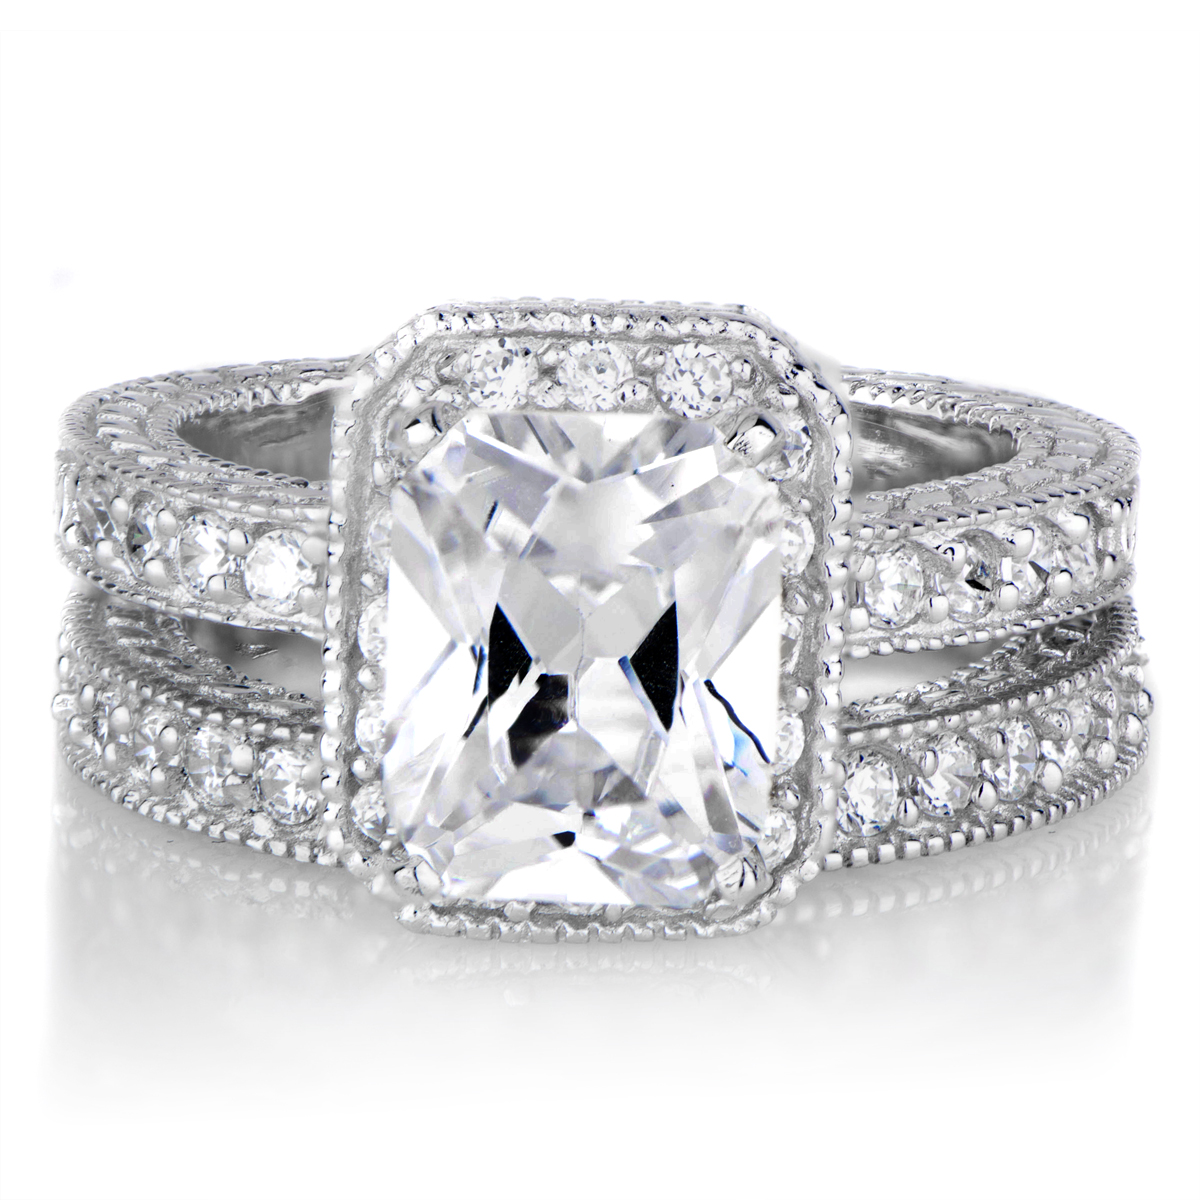 Emerald Cut CZ Wedding Ring Set Petite 25 Carats